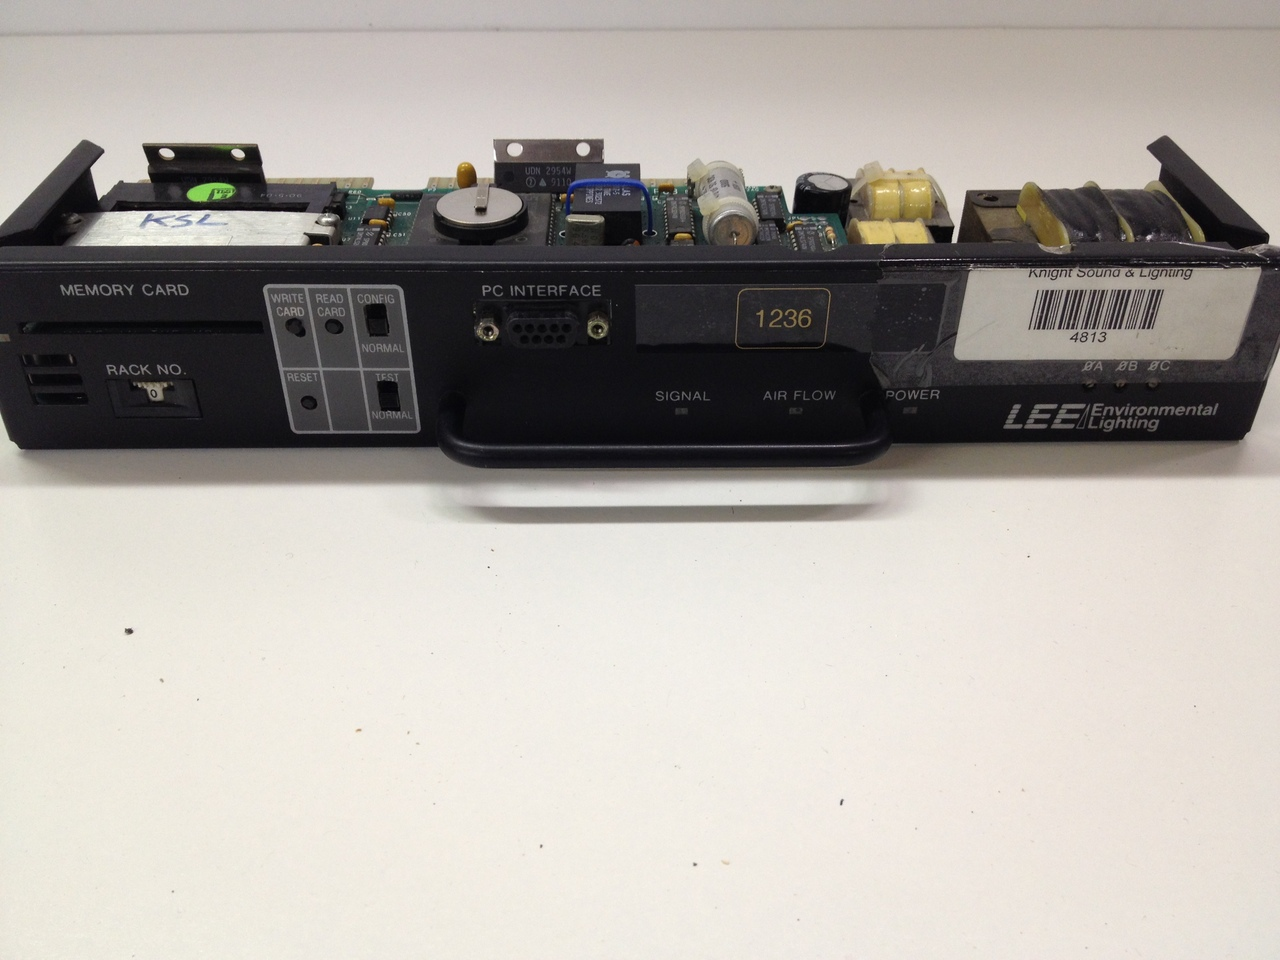 expanded_control_module_front__91921-1393352099-1280-1280.jpg